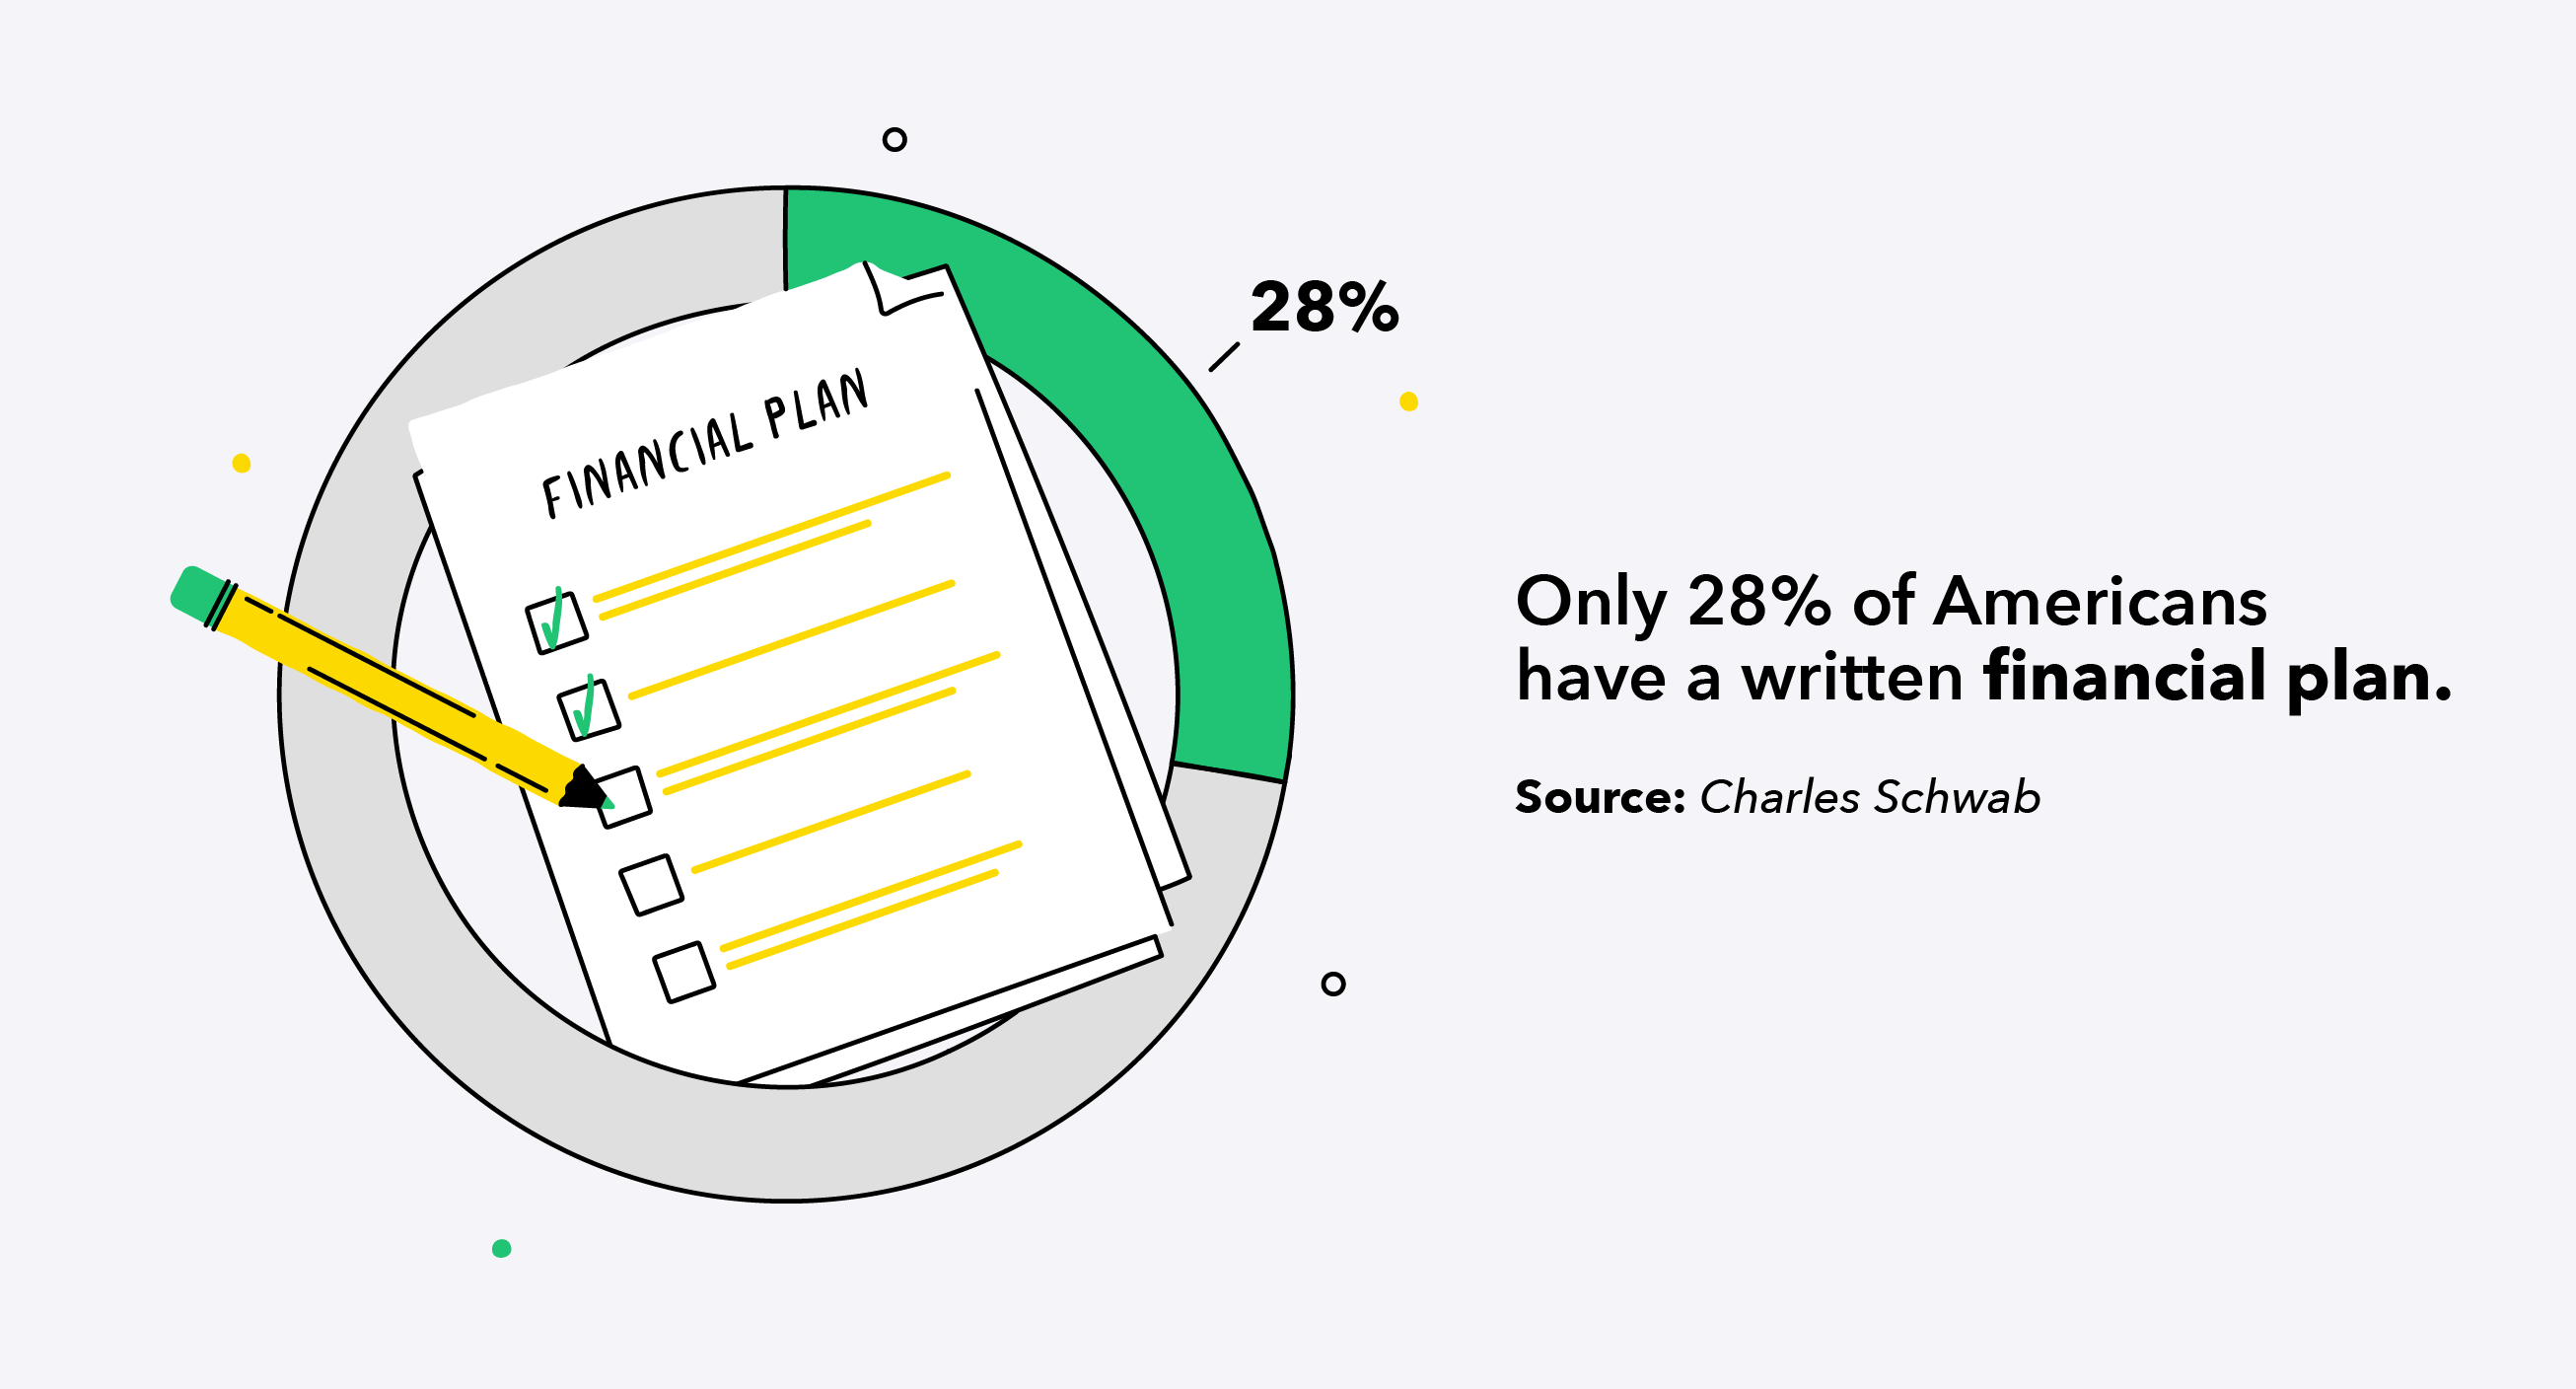 Only 28% of Americans have a written financial plan